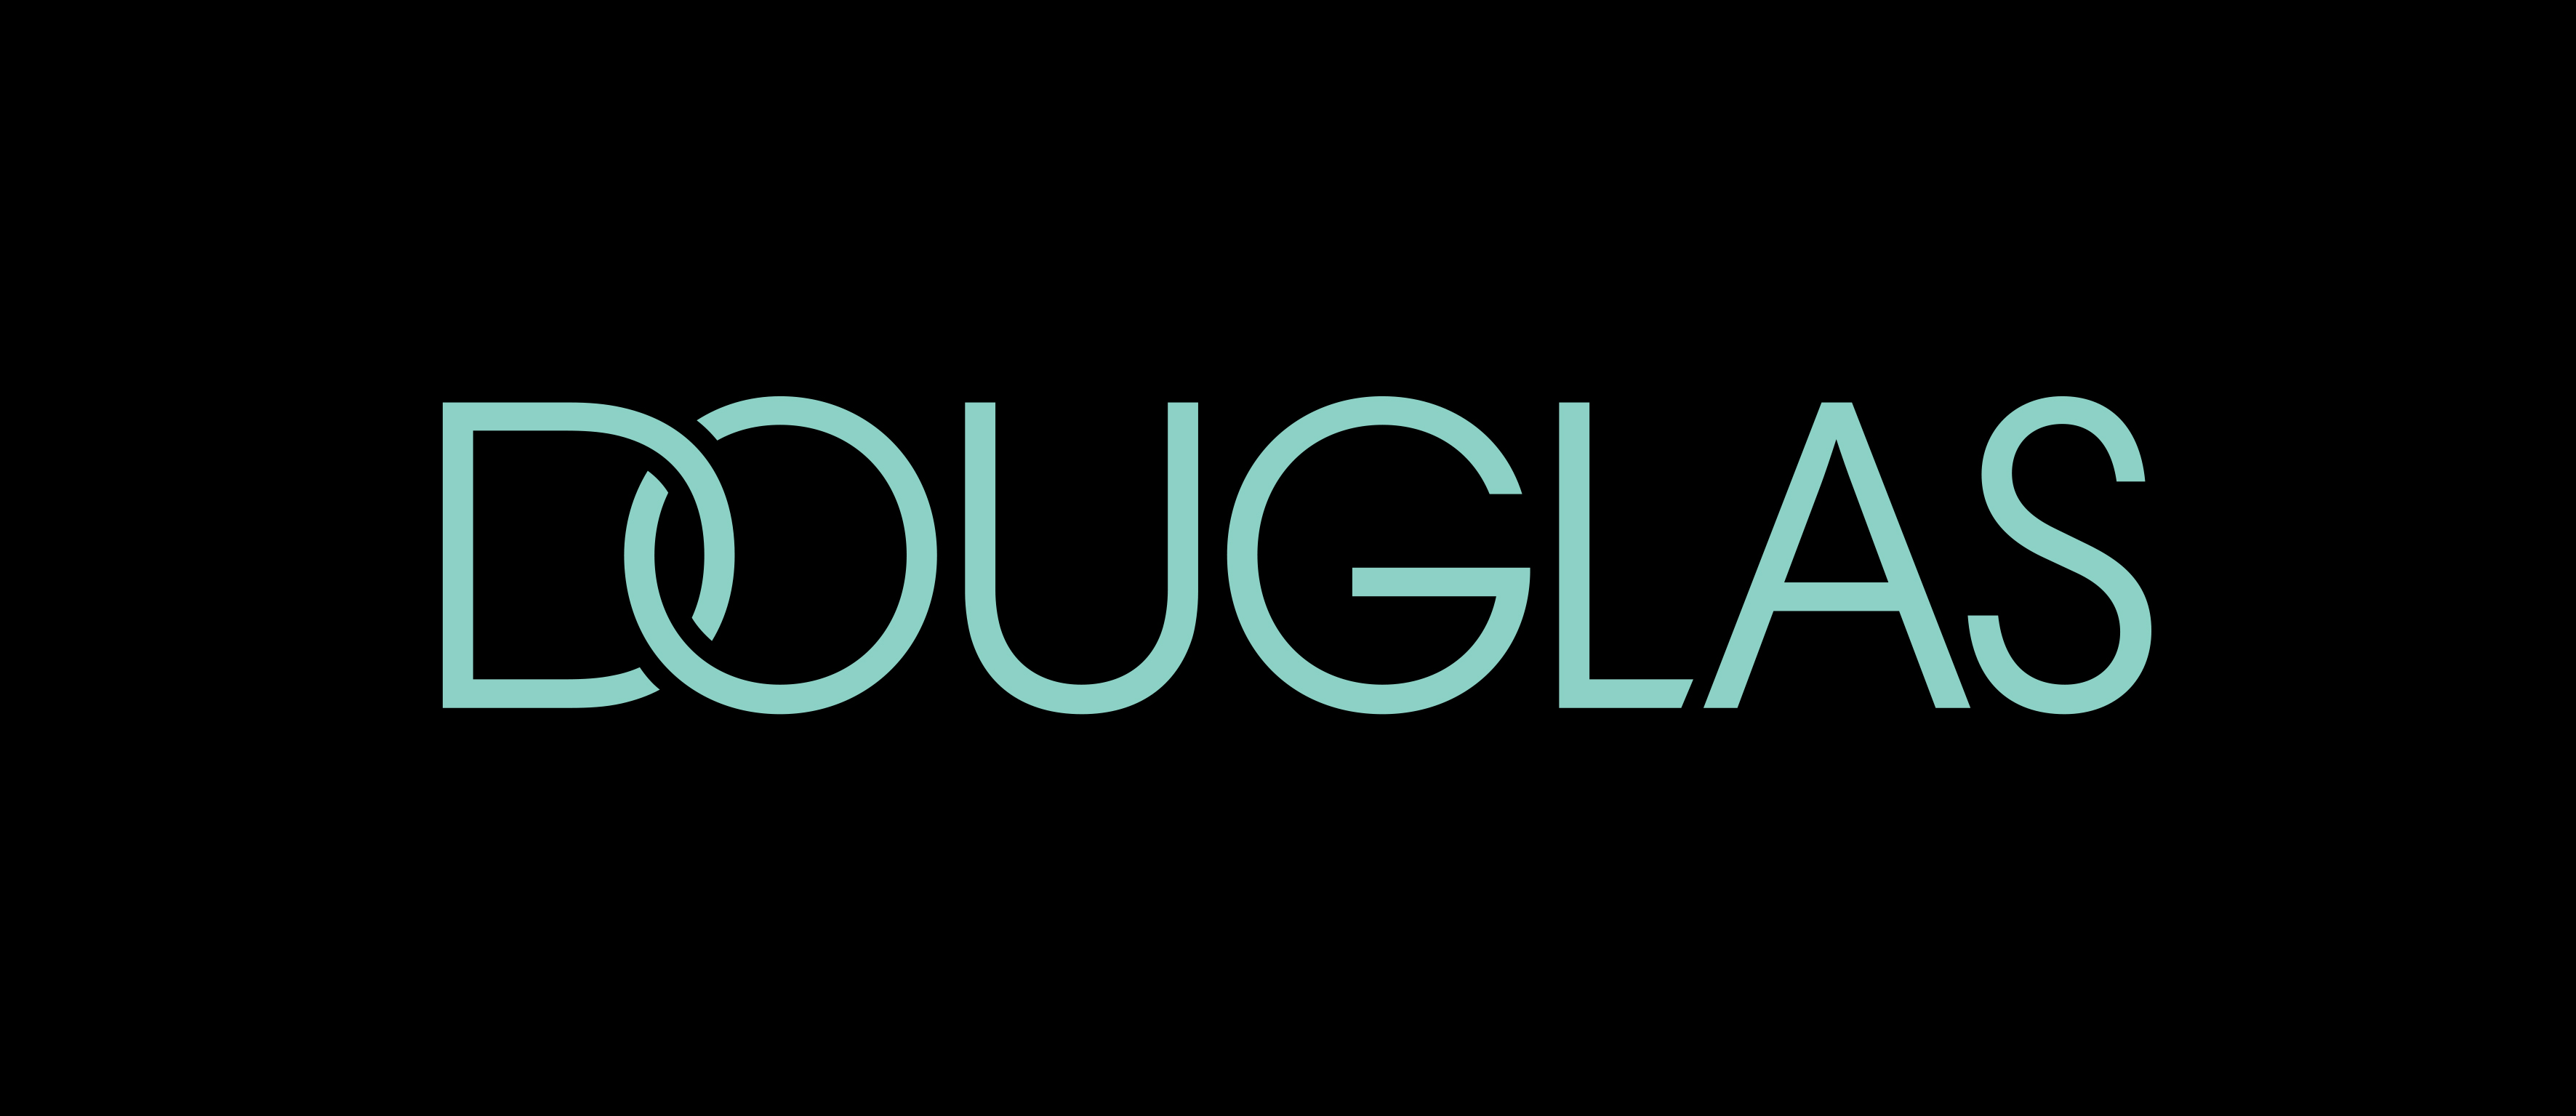 https://www.douglas.at